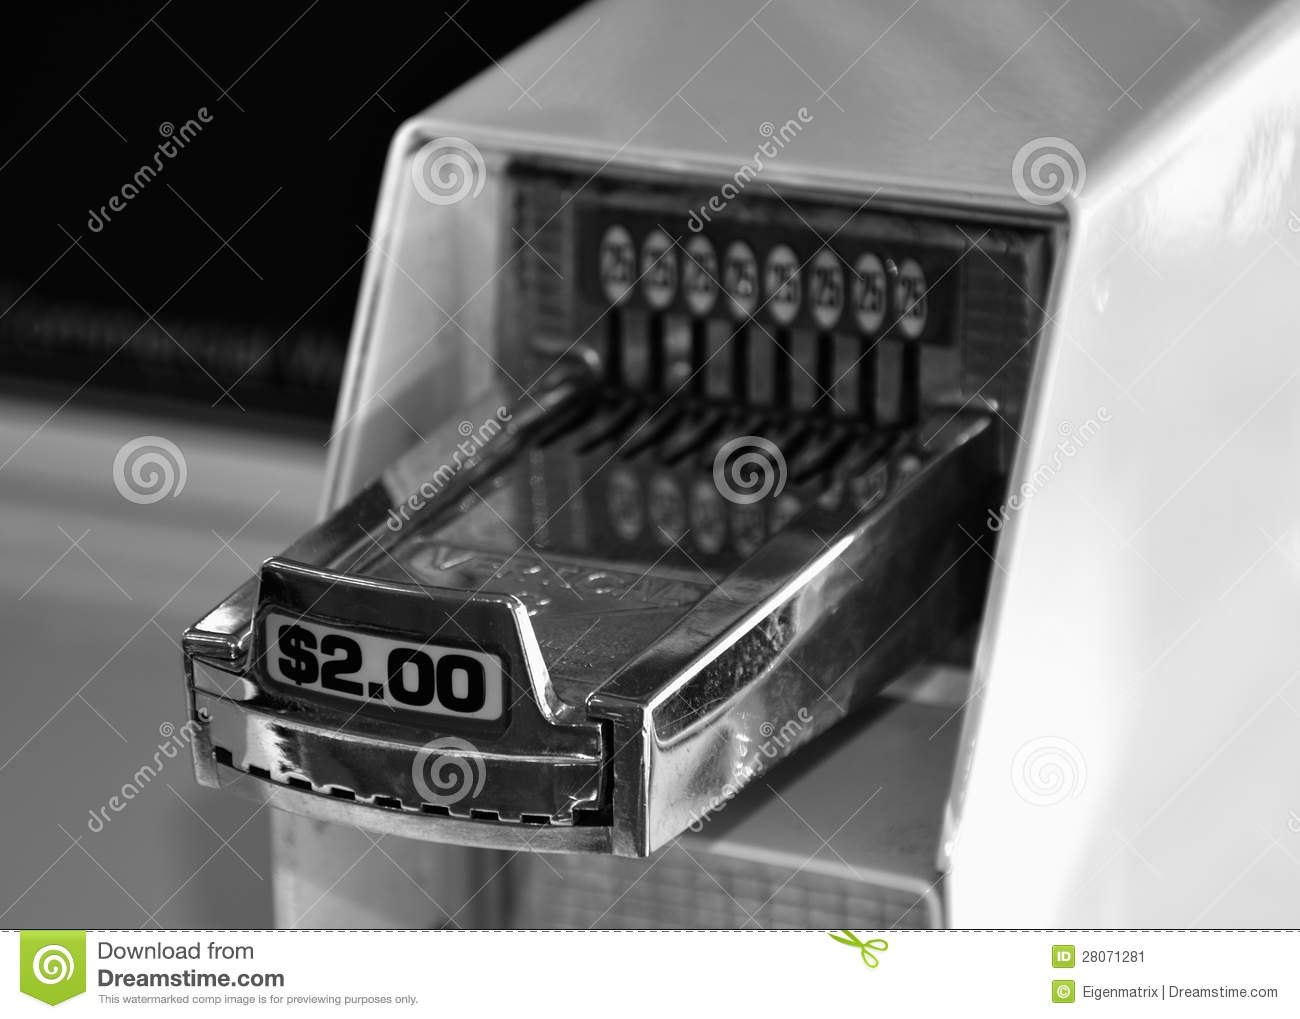 Coin Washing Machine >> Laundry Machine Coin Receiver Stock Image - Image: 28071281